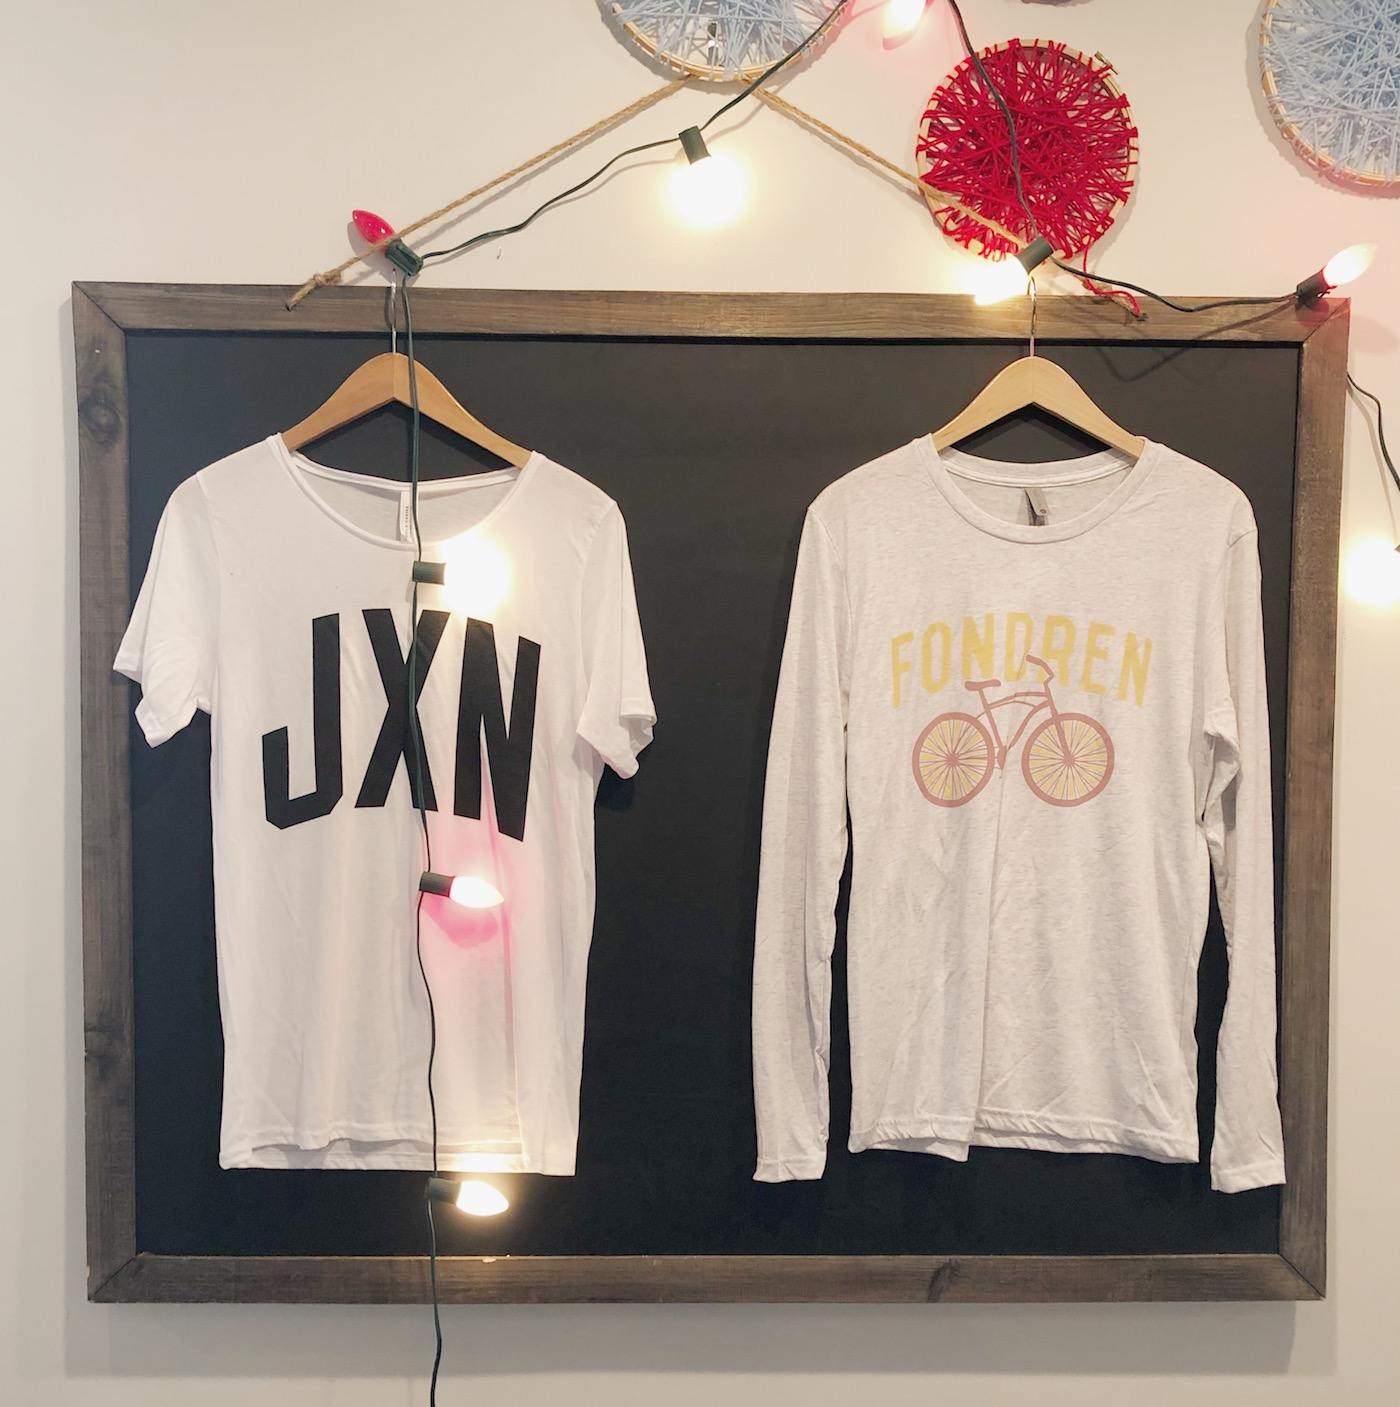 JCG Apparel and The Hive Blog giveaway!